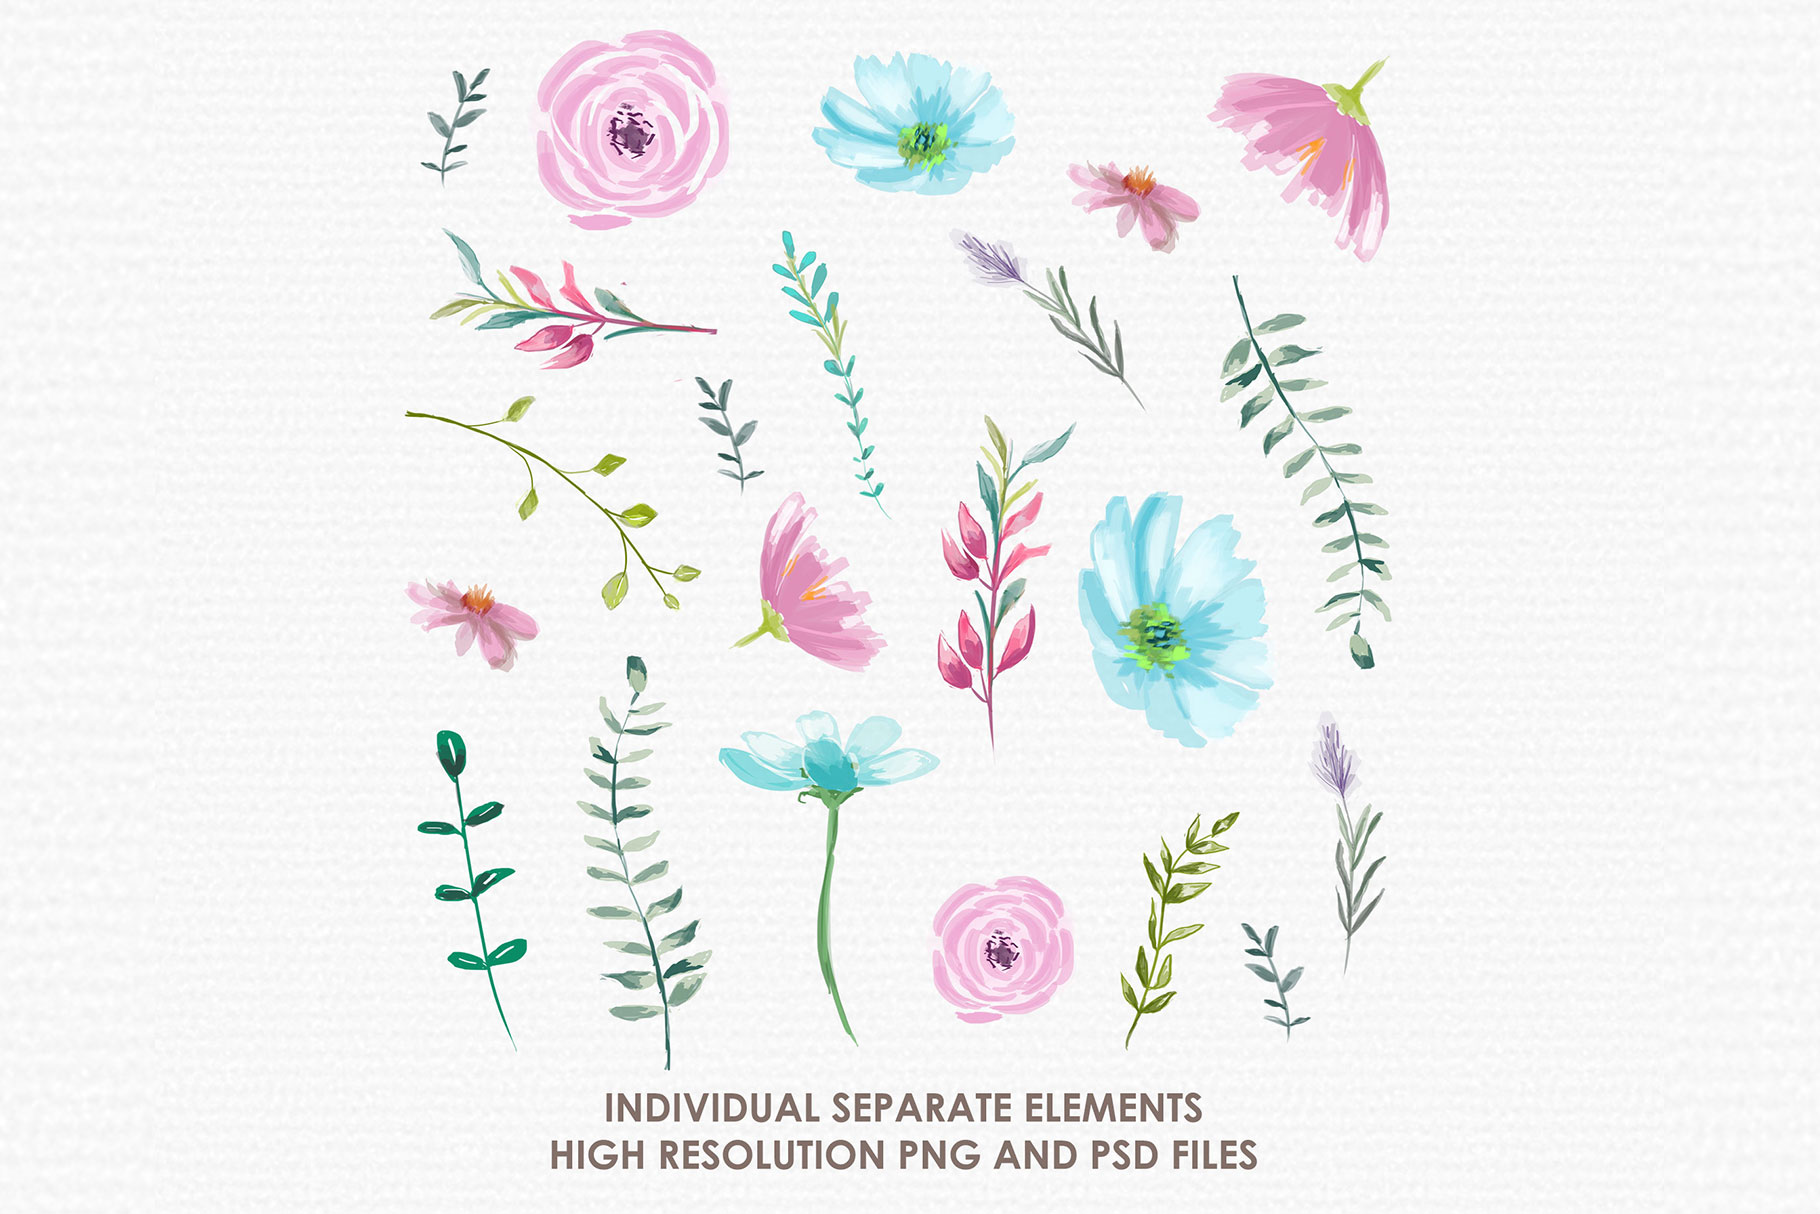 Lilian - Digital Watercolor Floral Flower Style Clipart example image 2